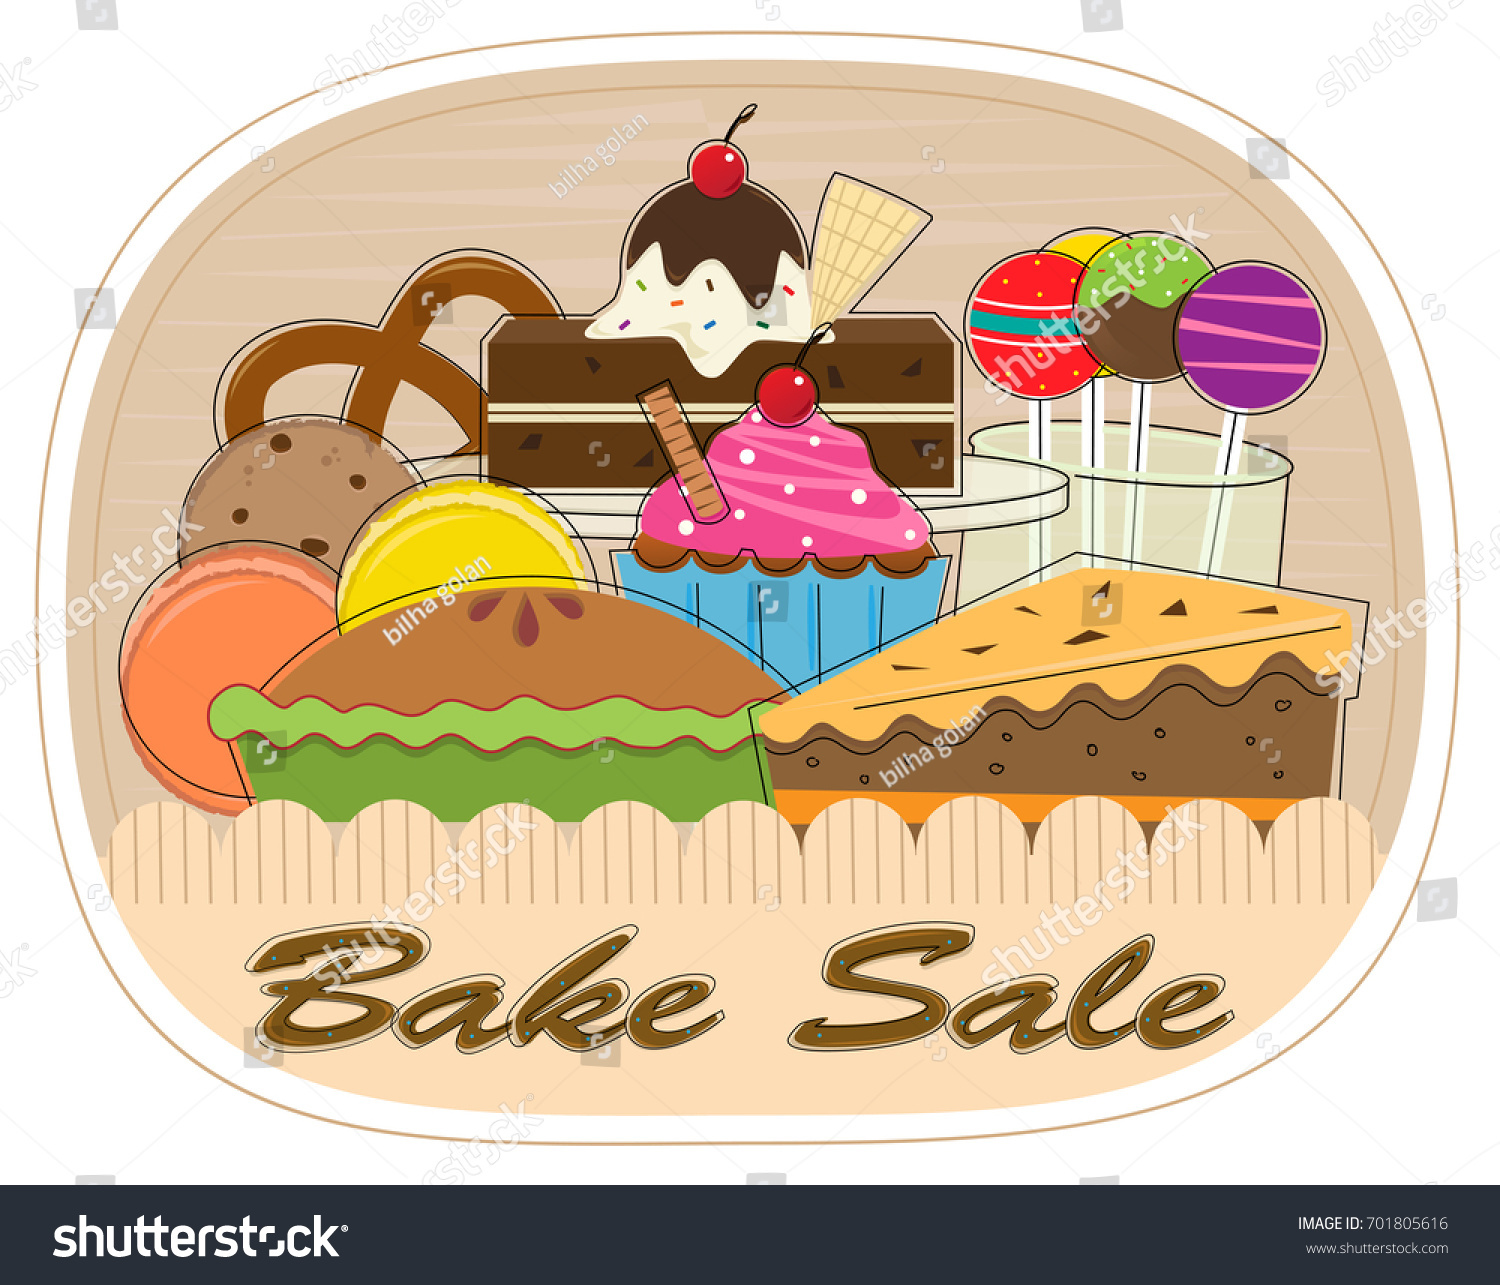 bake sale clipart assorted pastries bake stock vector bake sale clip art images free bake sale clip art pictures